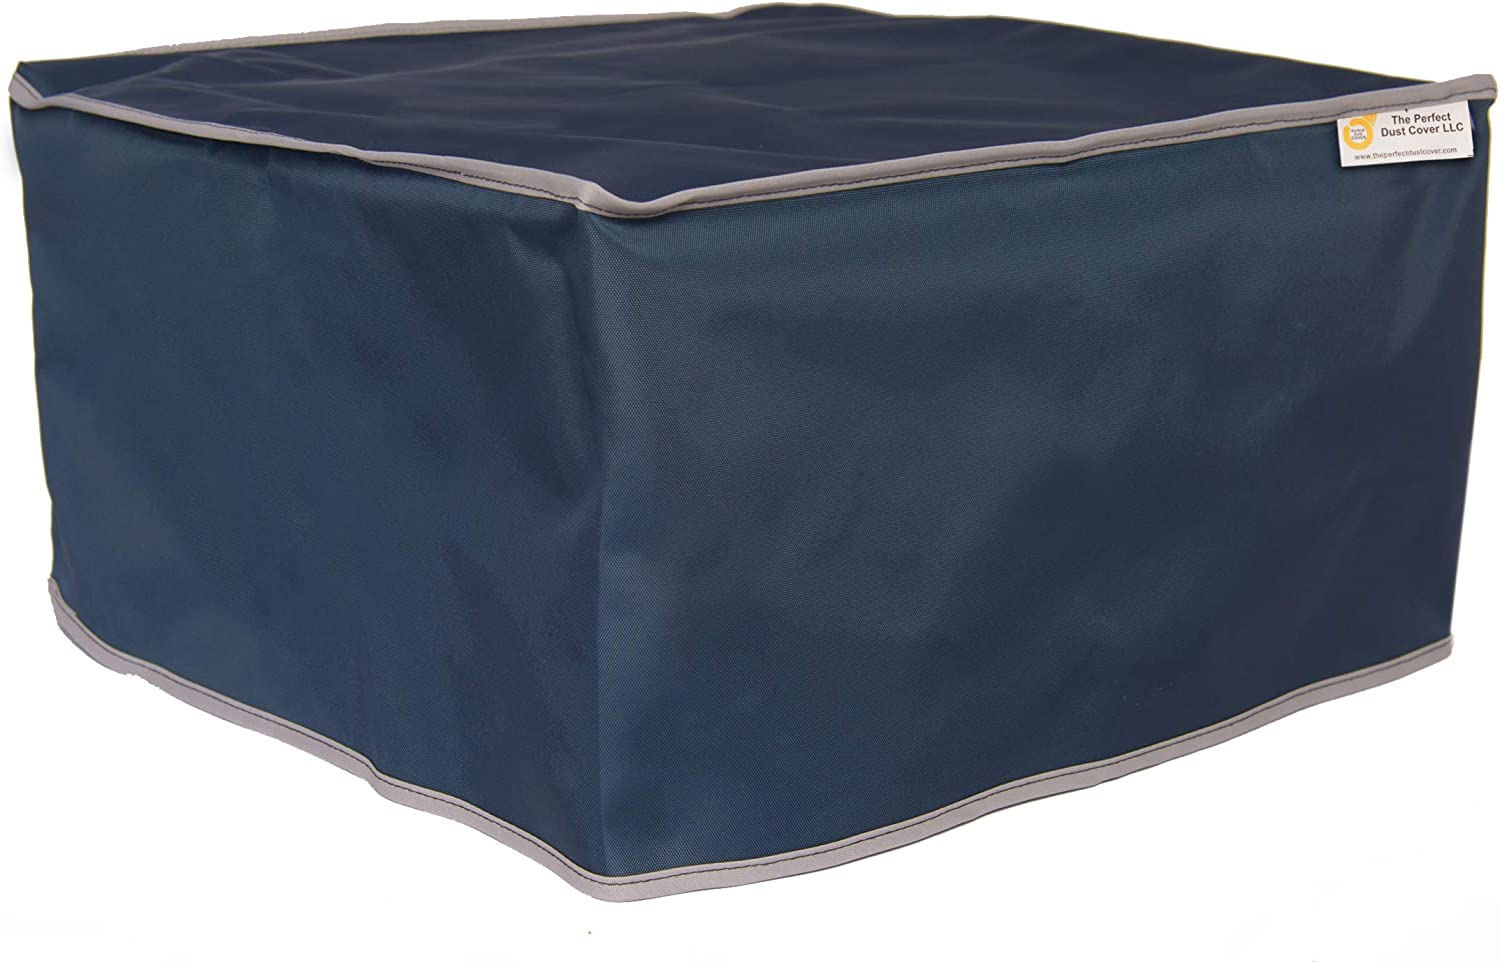 Max 87% OFF The Perfect Dust Cover Navy Nylon MFC-J4 quality assurance Blue for Brother